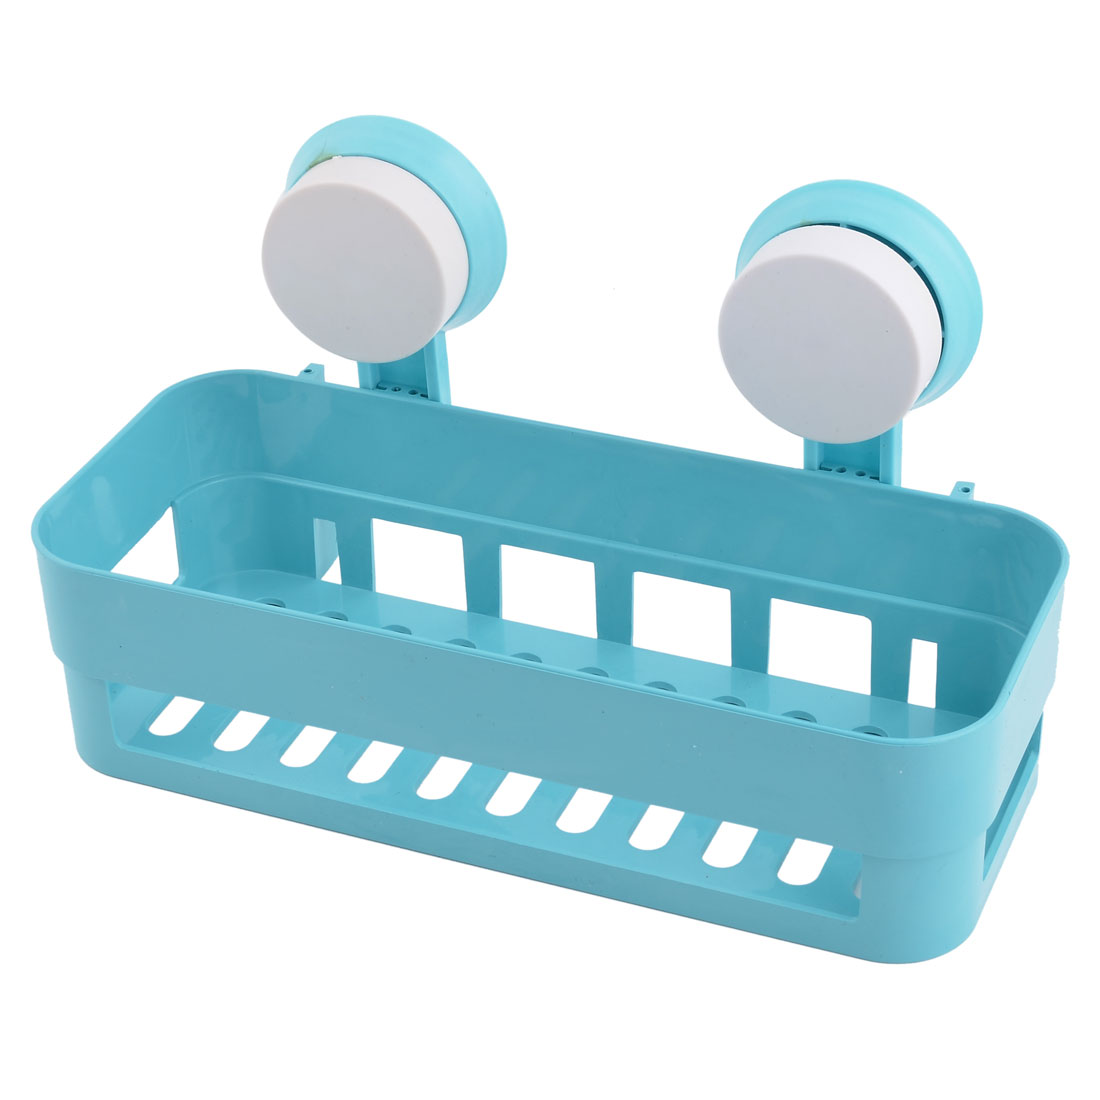 Bathroom Plastic Wall Hanging Soap Brush Storage Suction Cup Shelf Holder Blue